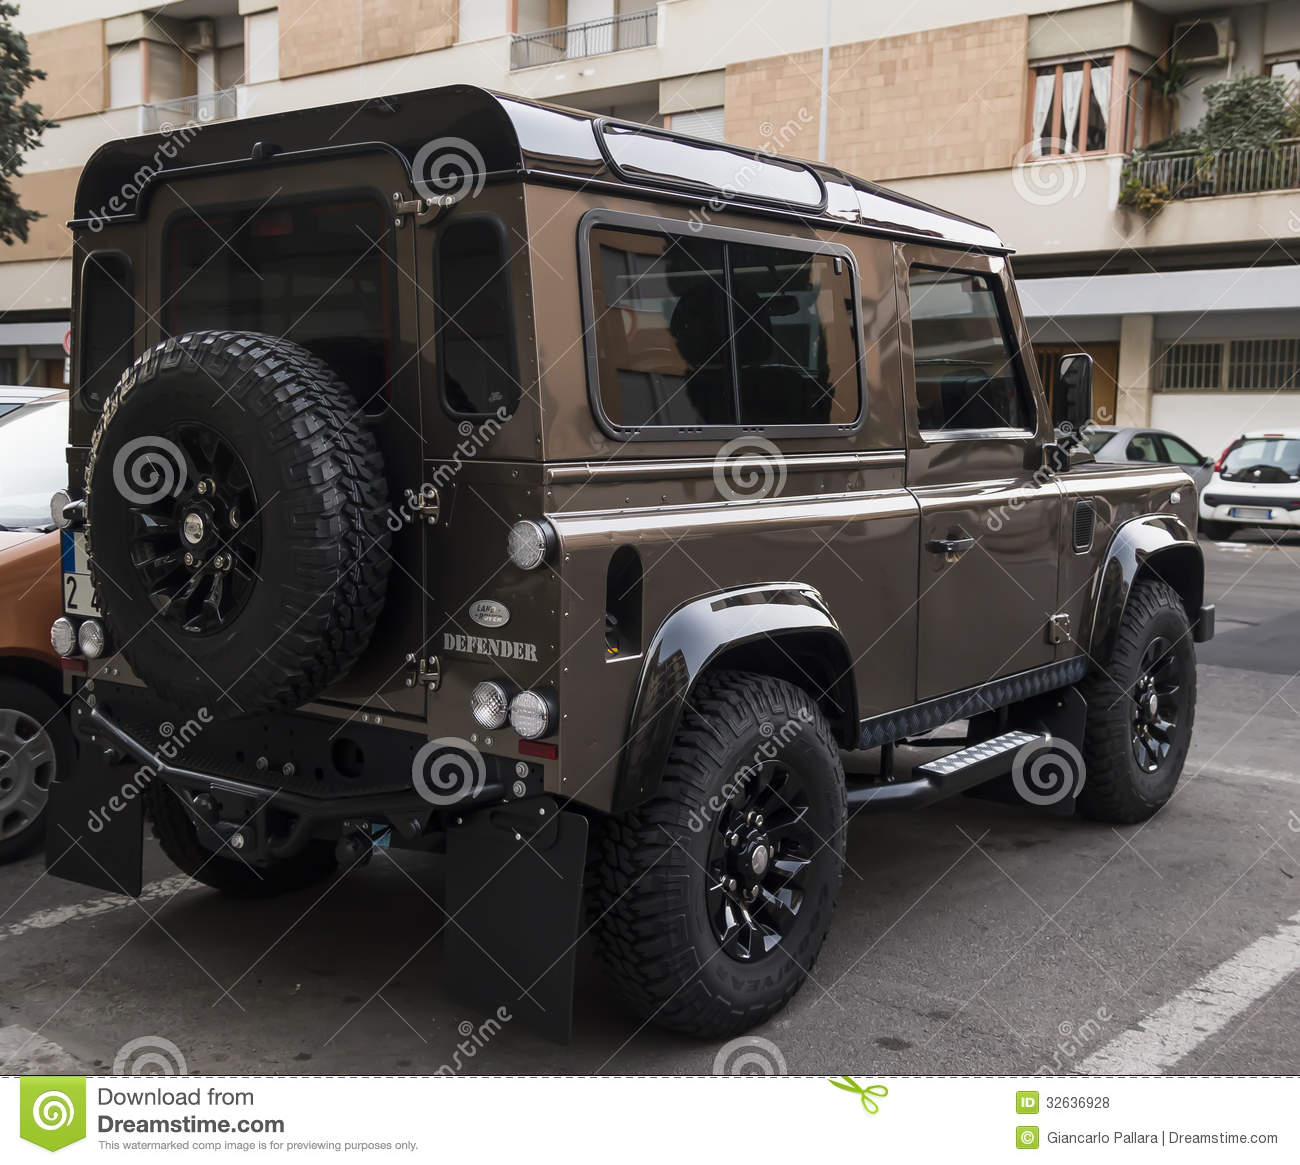 Defender 110 2018 >> New Landrover Defender Suv Editorial Stock Photo - Image ...